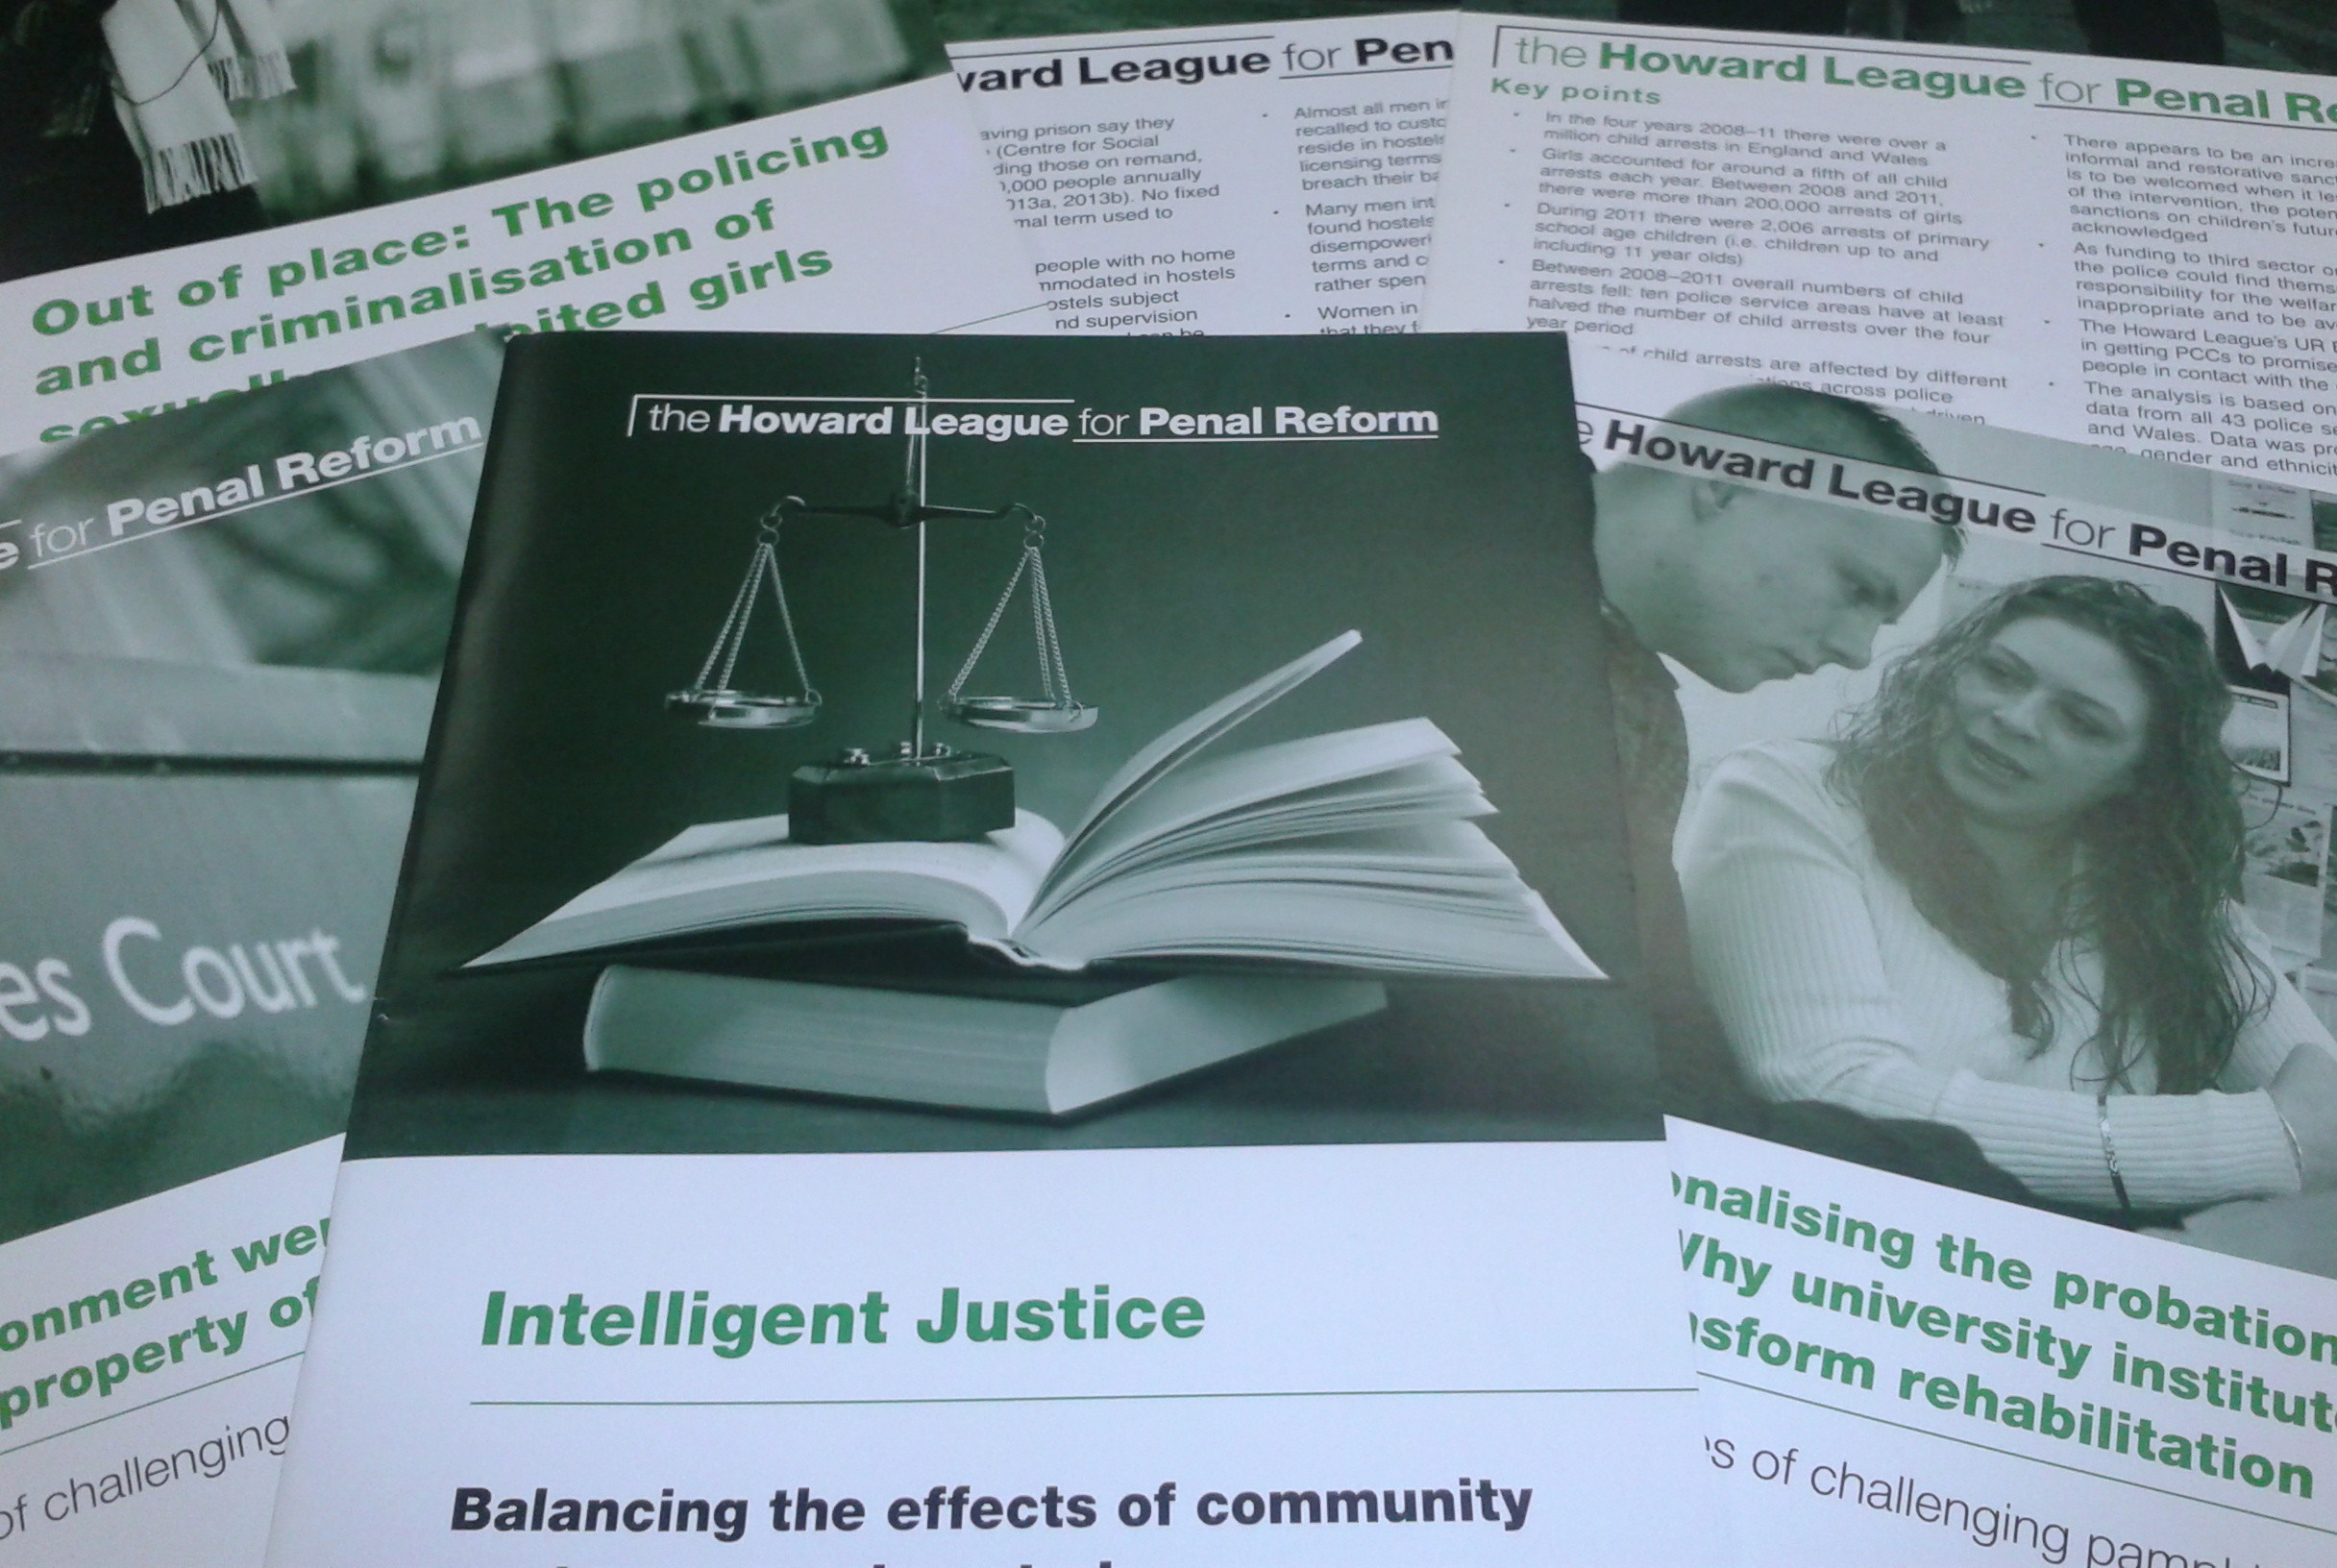 Publications: Intelligent Justice and Out of Place